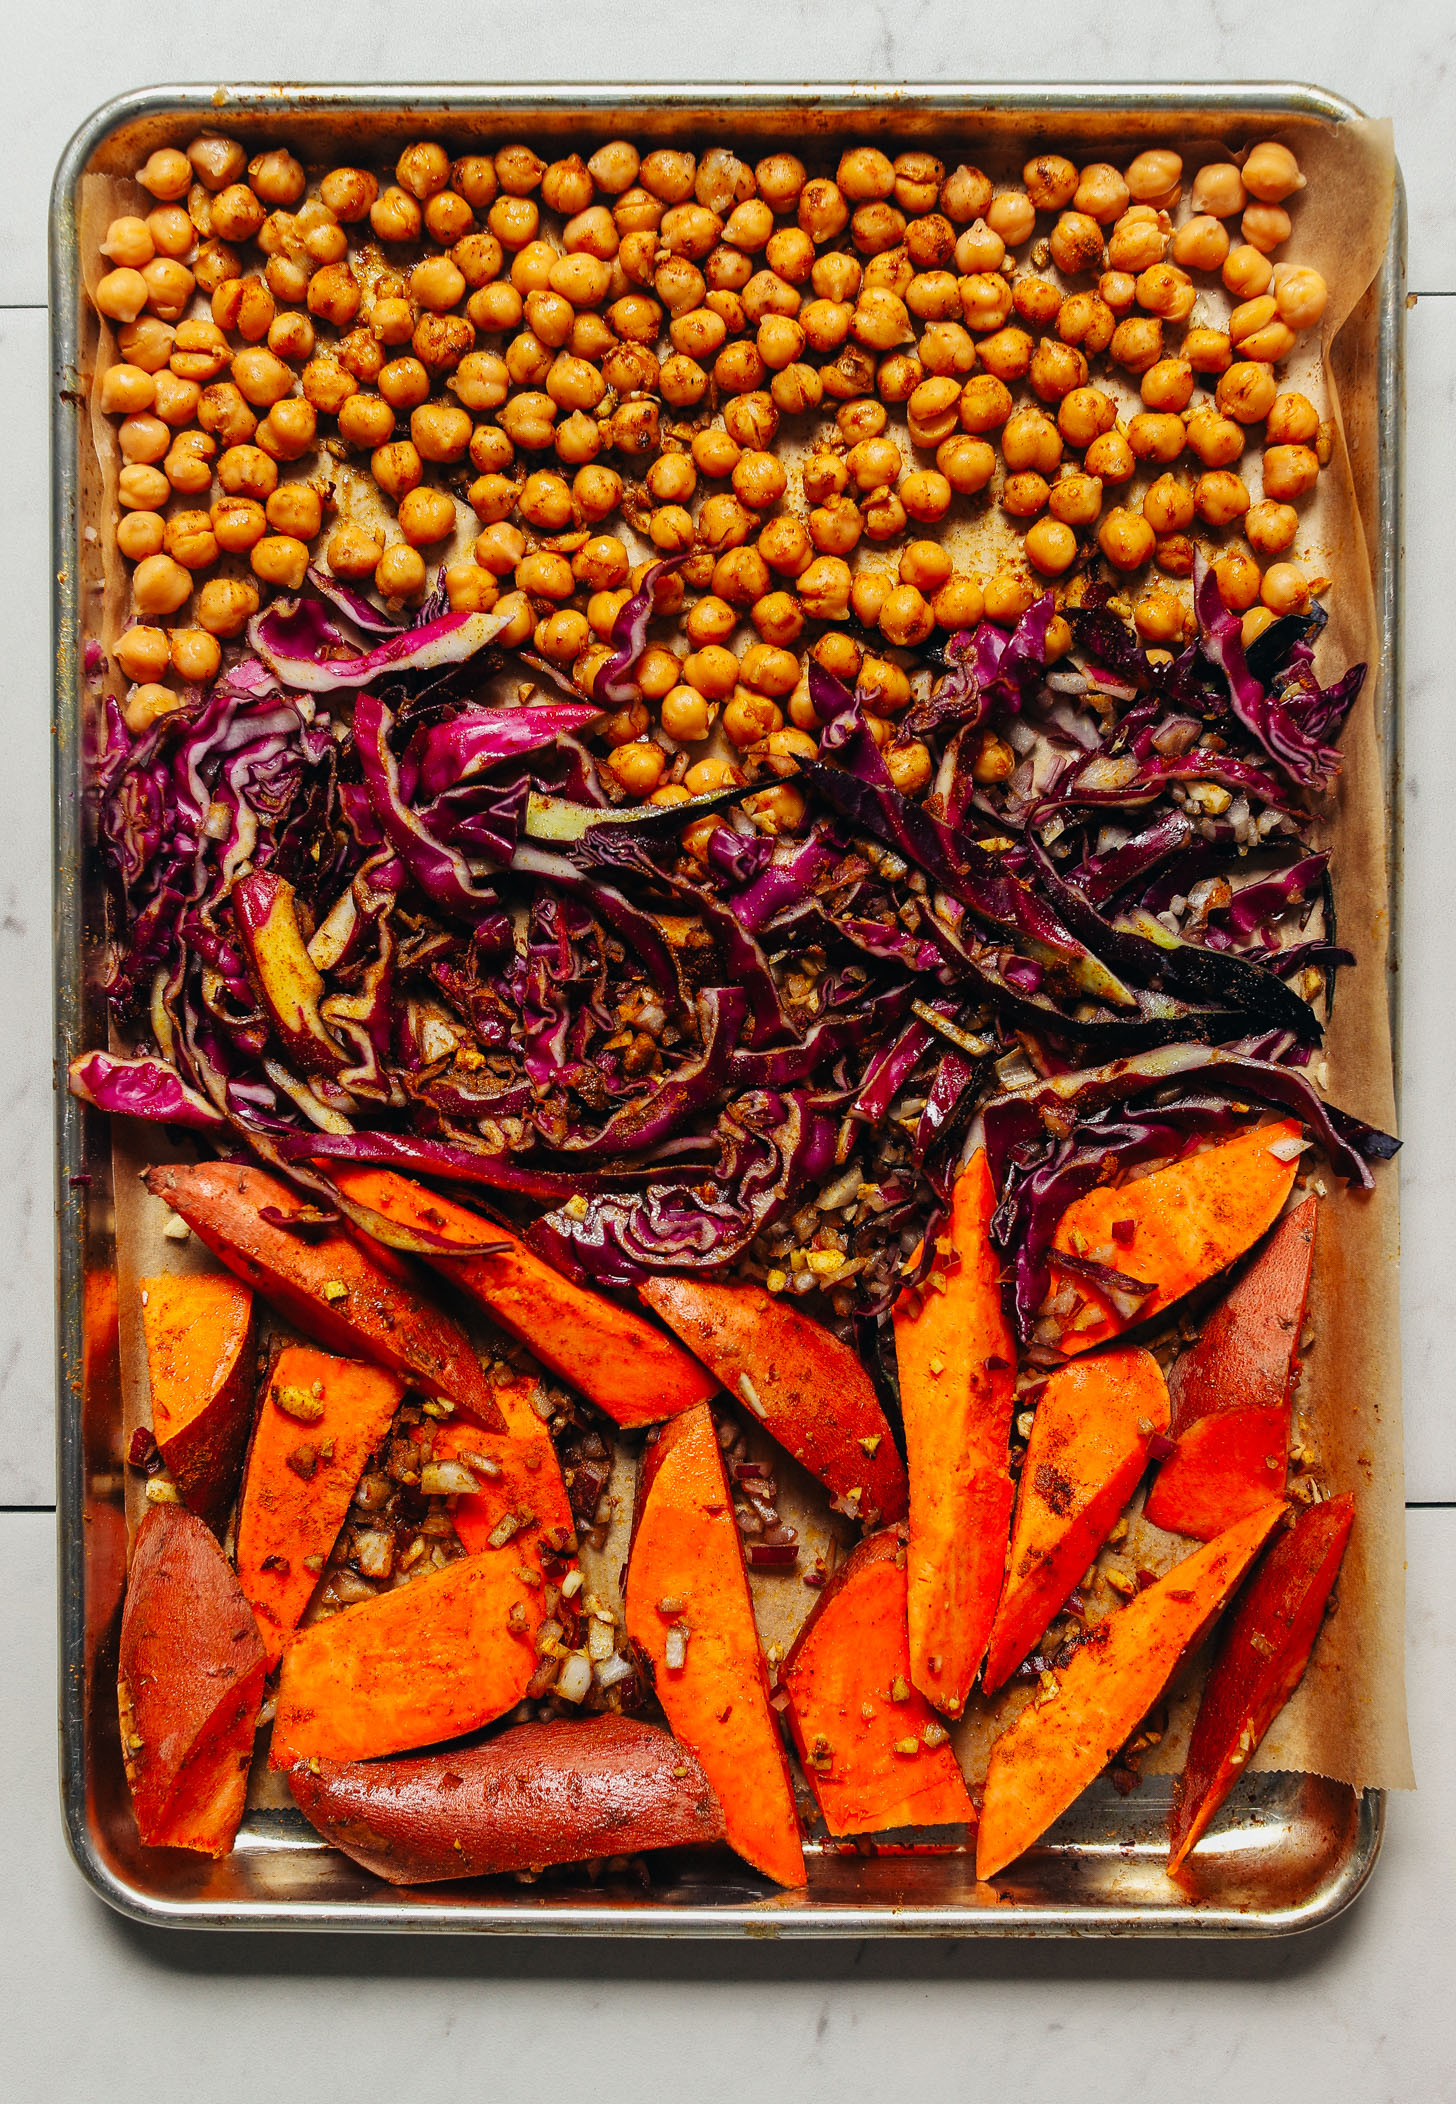 Baking sheet filled with sweet potatoes, cabbage, and chickpeas topped with curry powder